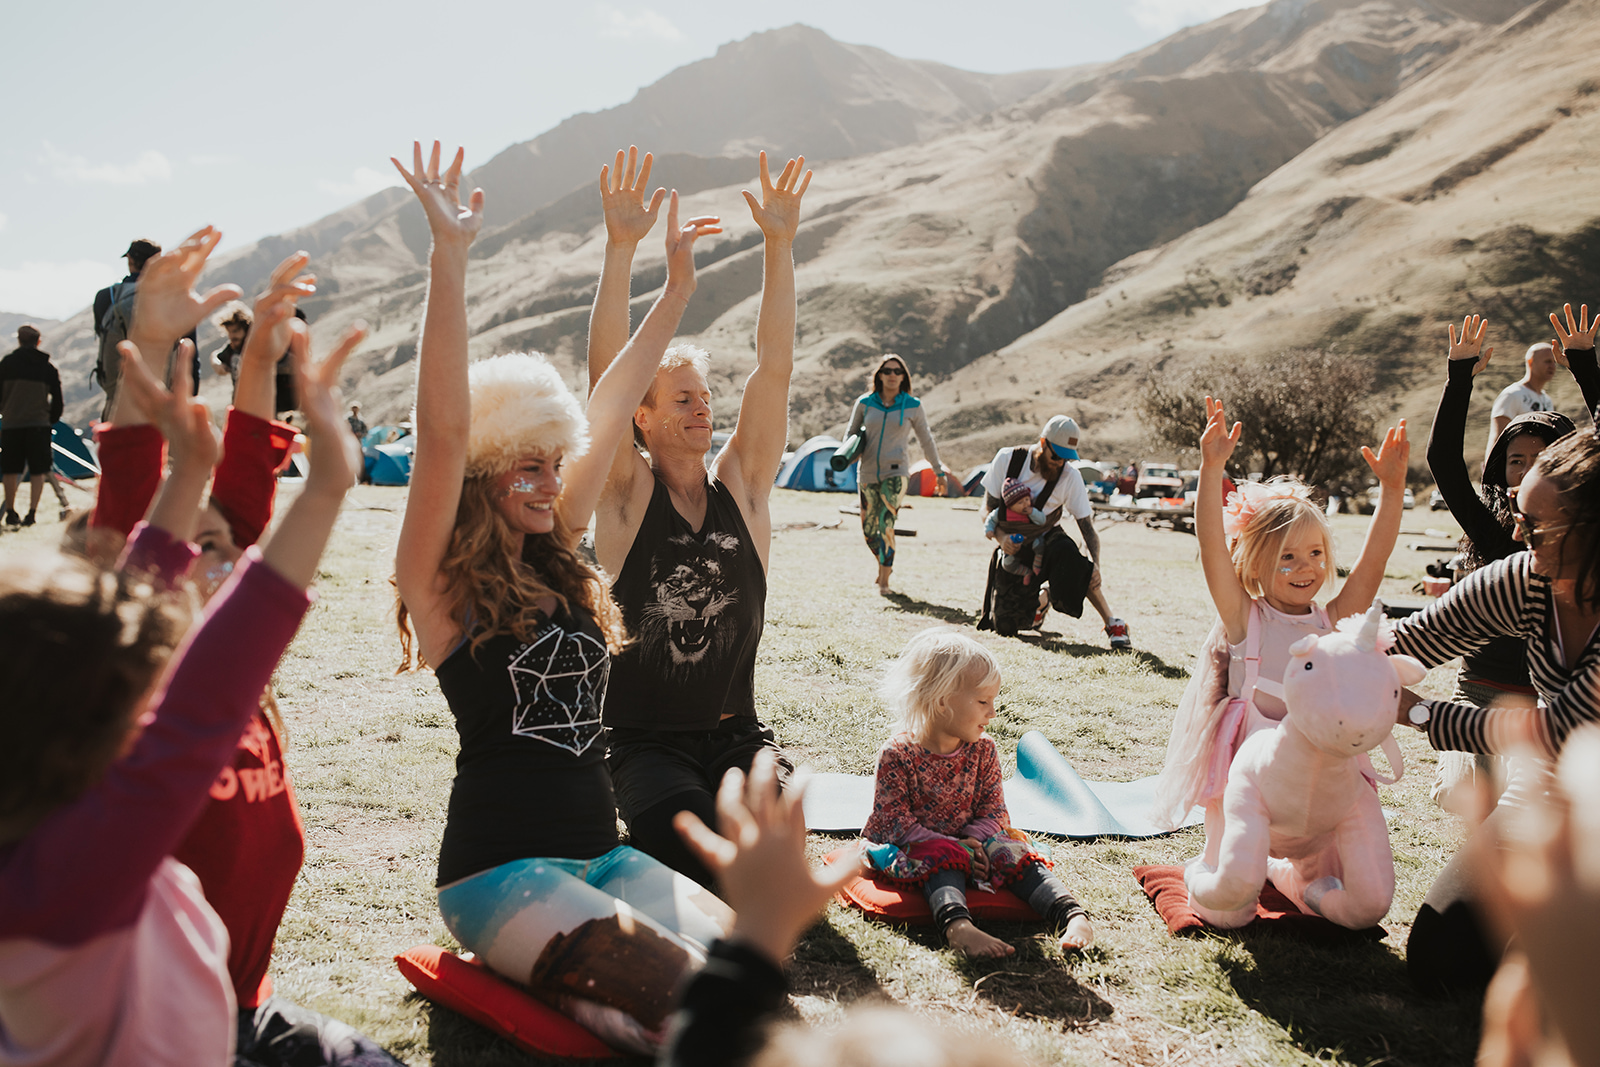 Kids Yoga Class at Biophilia with Anna Molly Chaparro taken by Kate Roberge Photogrpahy Queenstown